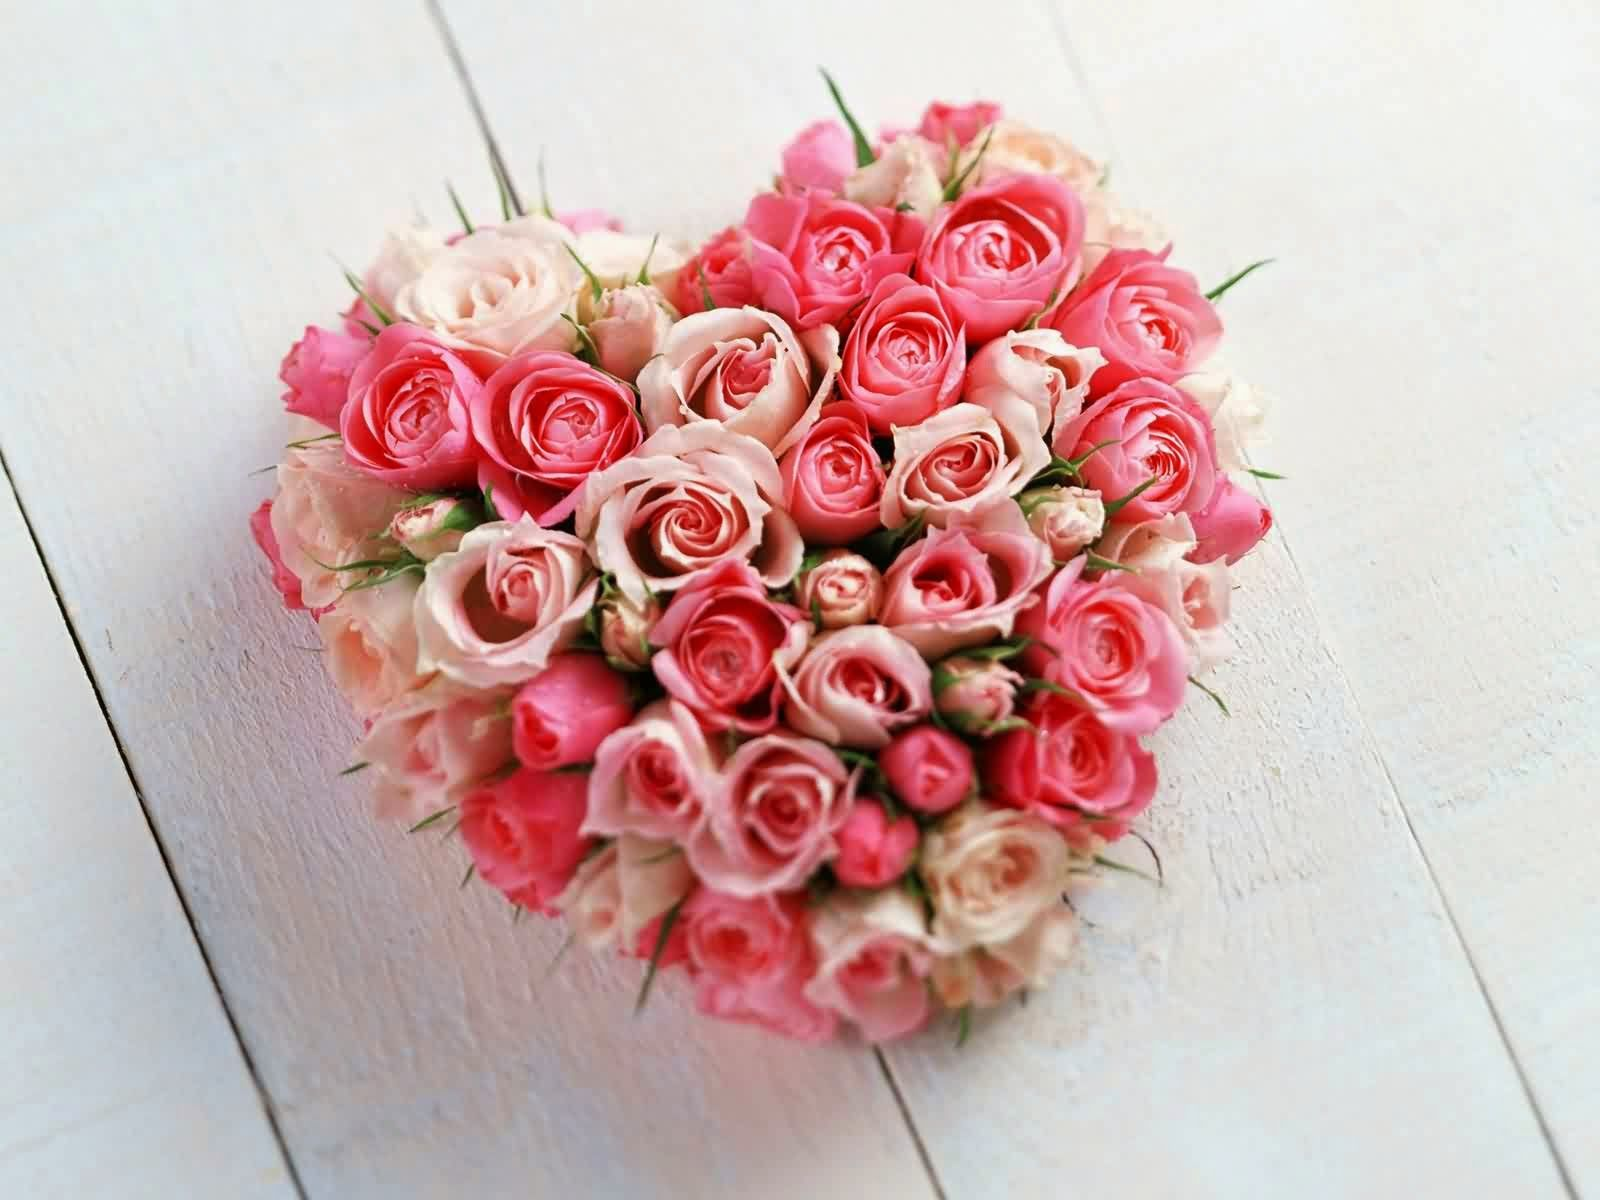 Heart beautiful flowers hearts pinterest beautiful heart beautiful flowers izmirmasajfo Choice Image